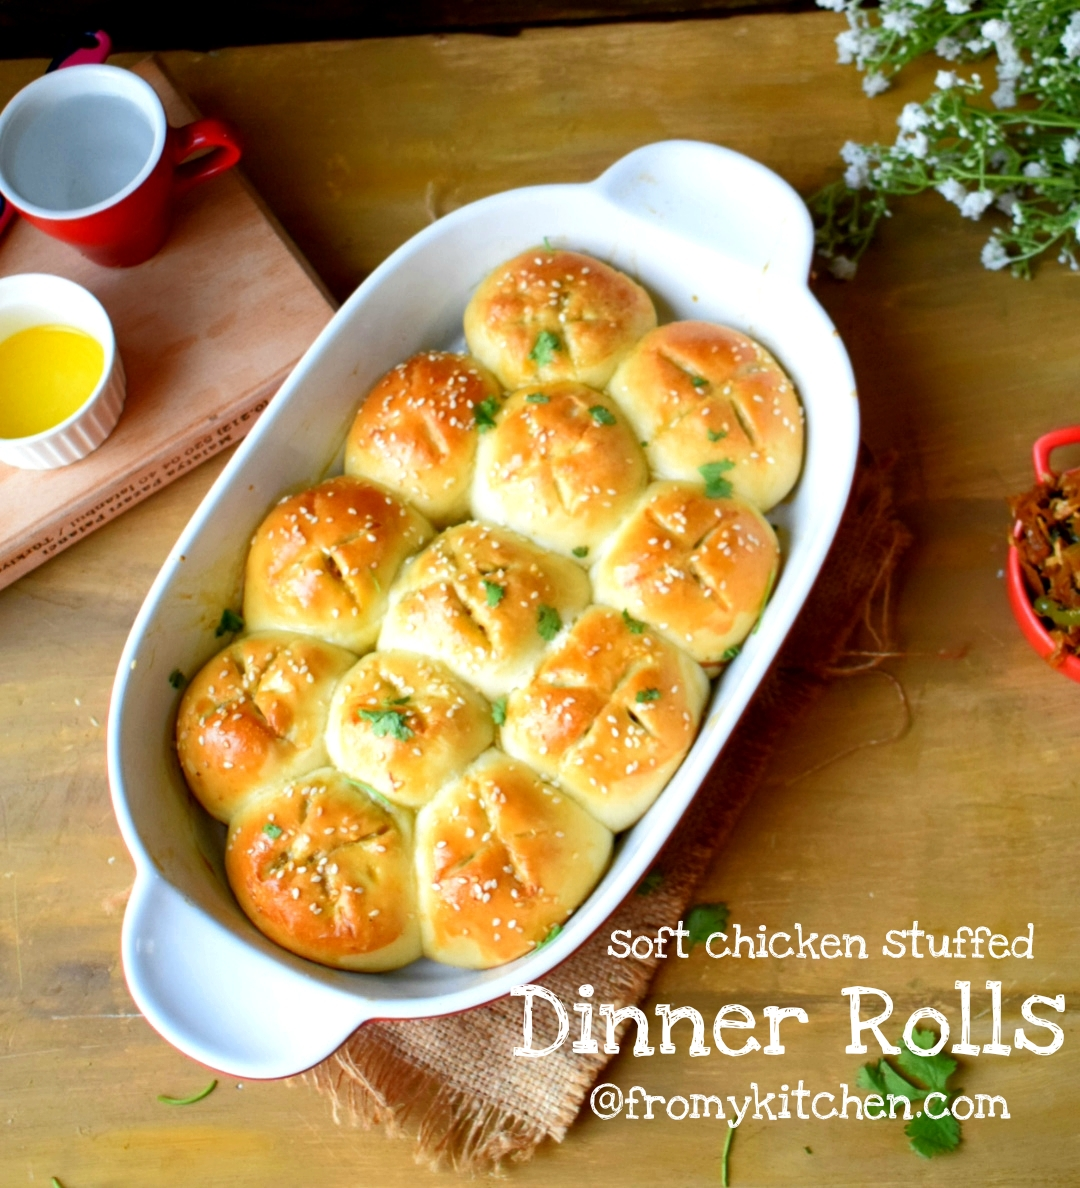 Soft Chicken Stuffed Dinner Rolls From My Kitchen